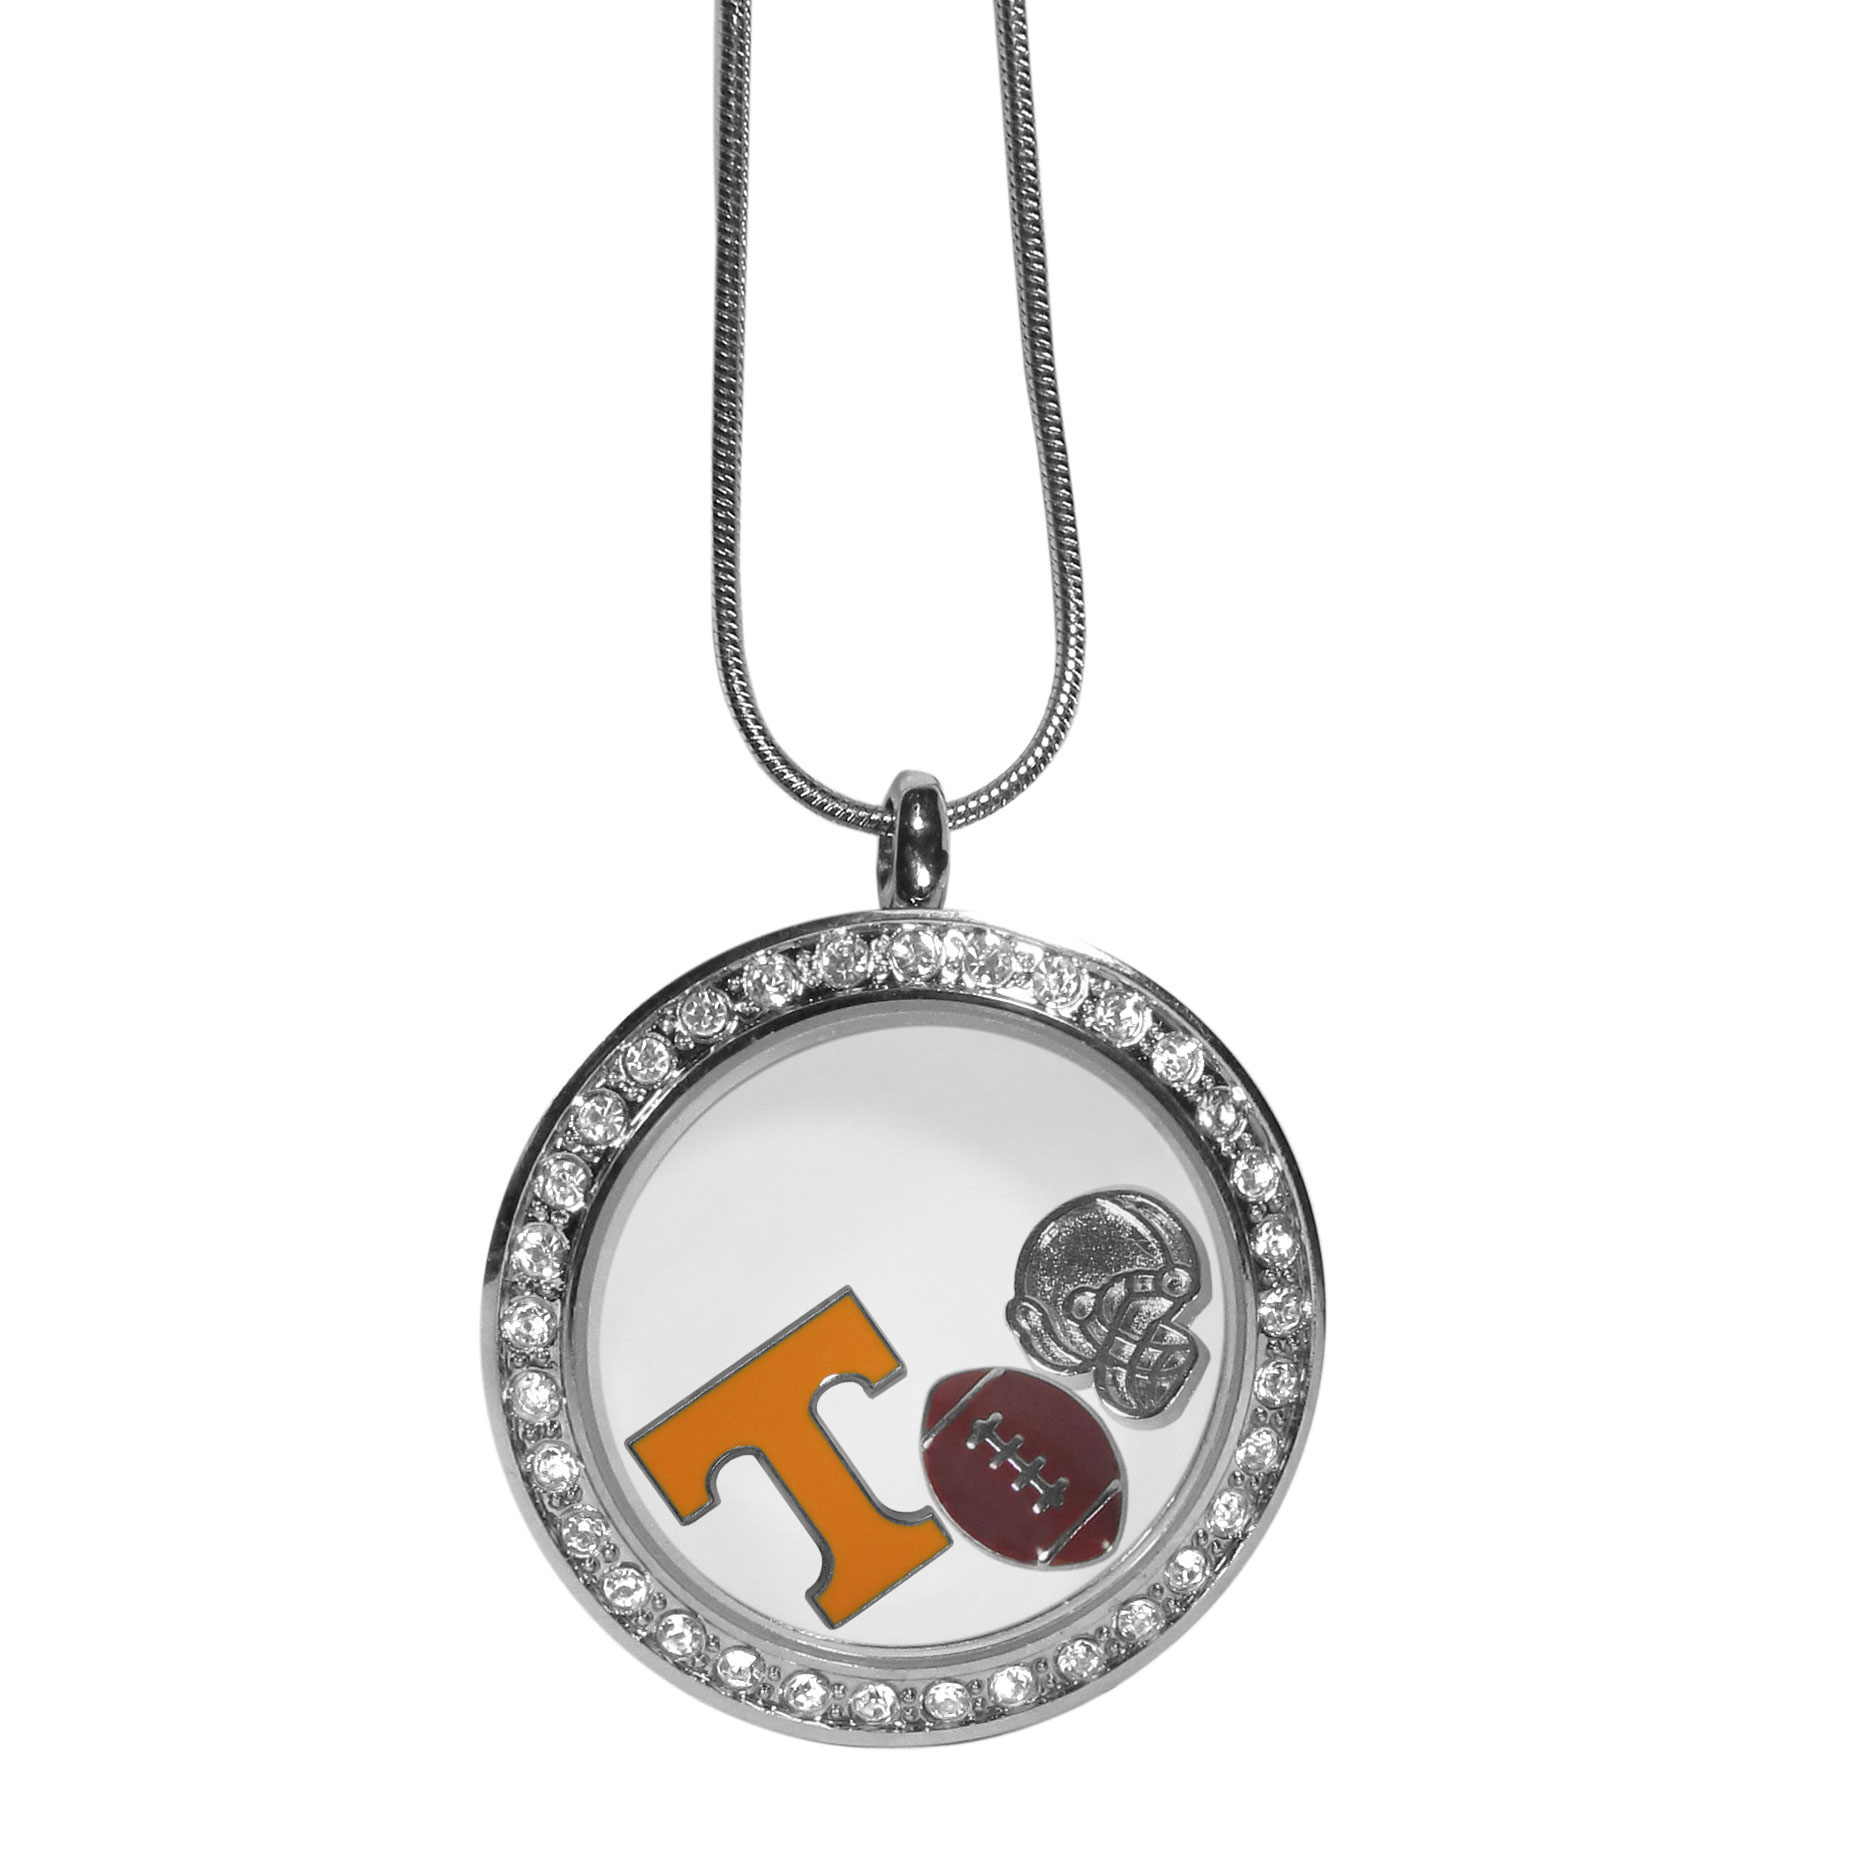 Tennessee Volunteers Locket Necklace - We have taken the classic floating charm locket and combined with licensed sports charms to create a must have fan necklace. The necklace comes with 3 charms; 1 Tennessee Volunteers charm, one football charm and one helmet charm. The charms float in a beautiful locket that has a strong magnetic closure with a rhinestone border. The locket comes on an 18 inch snake chain with 2 inch extender.